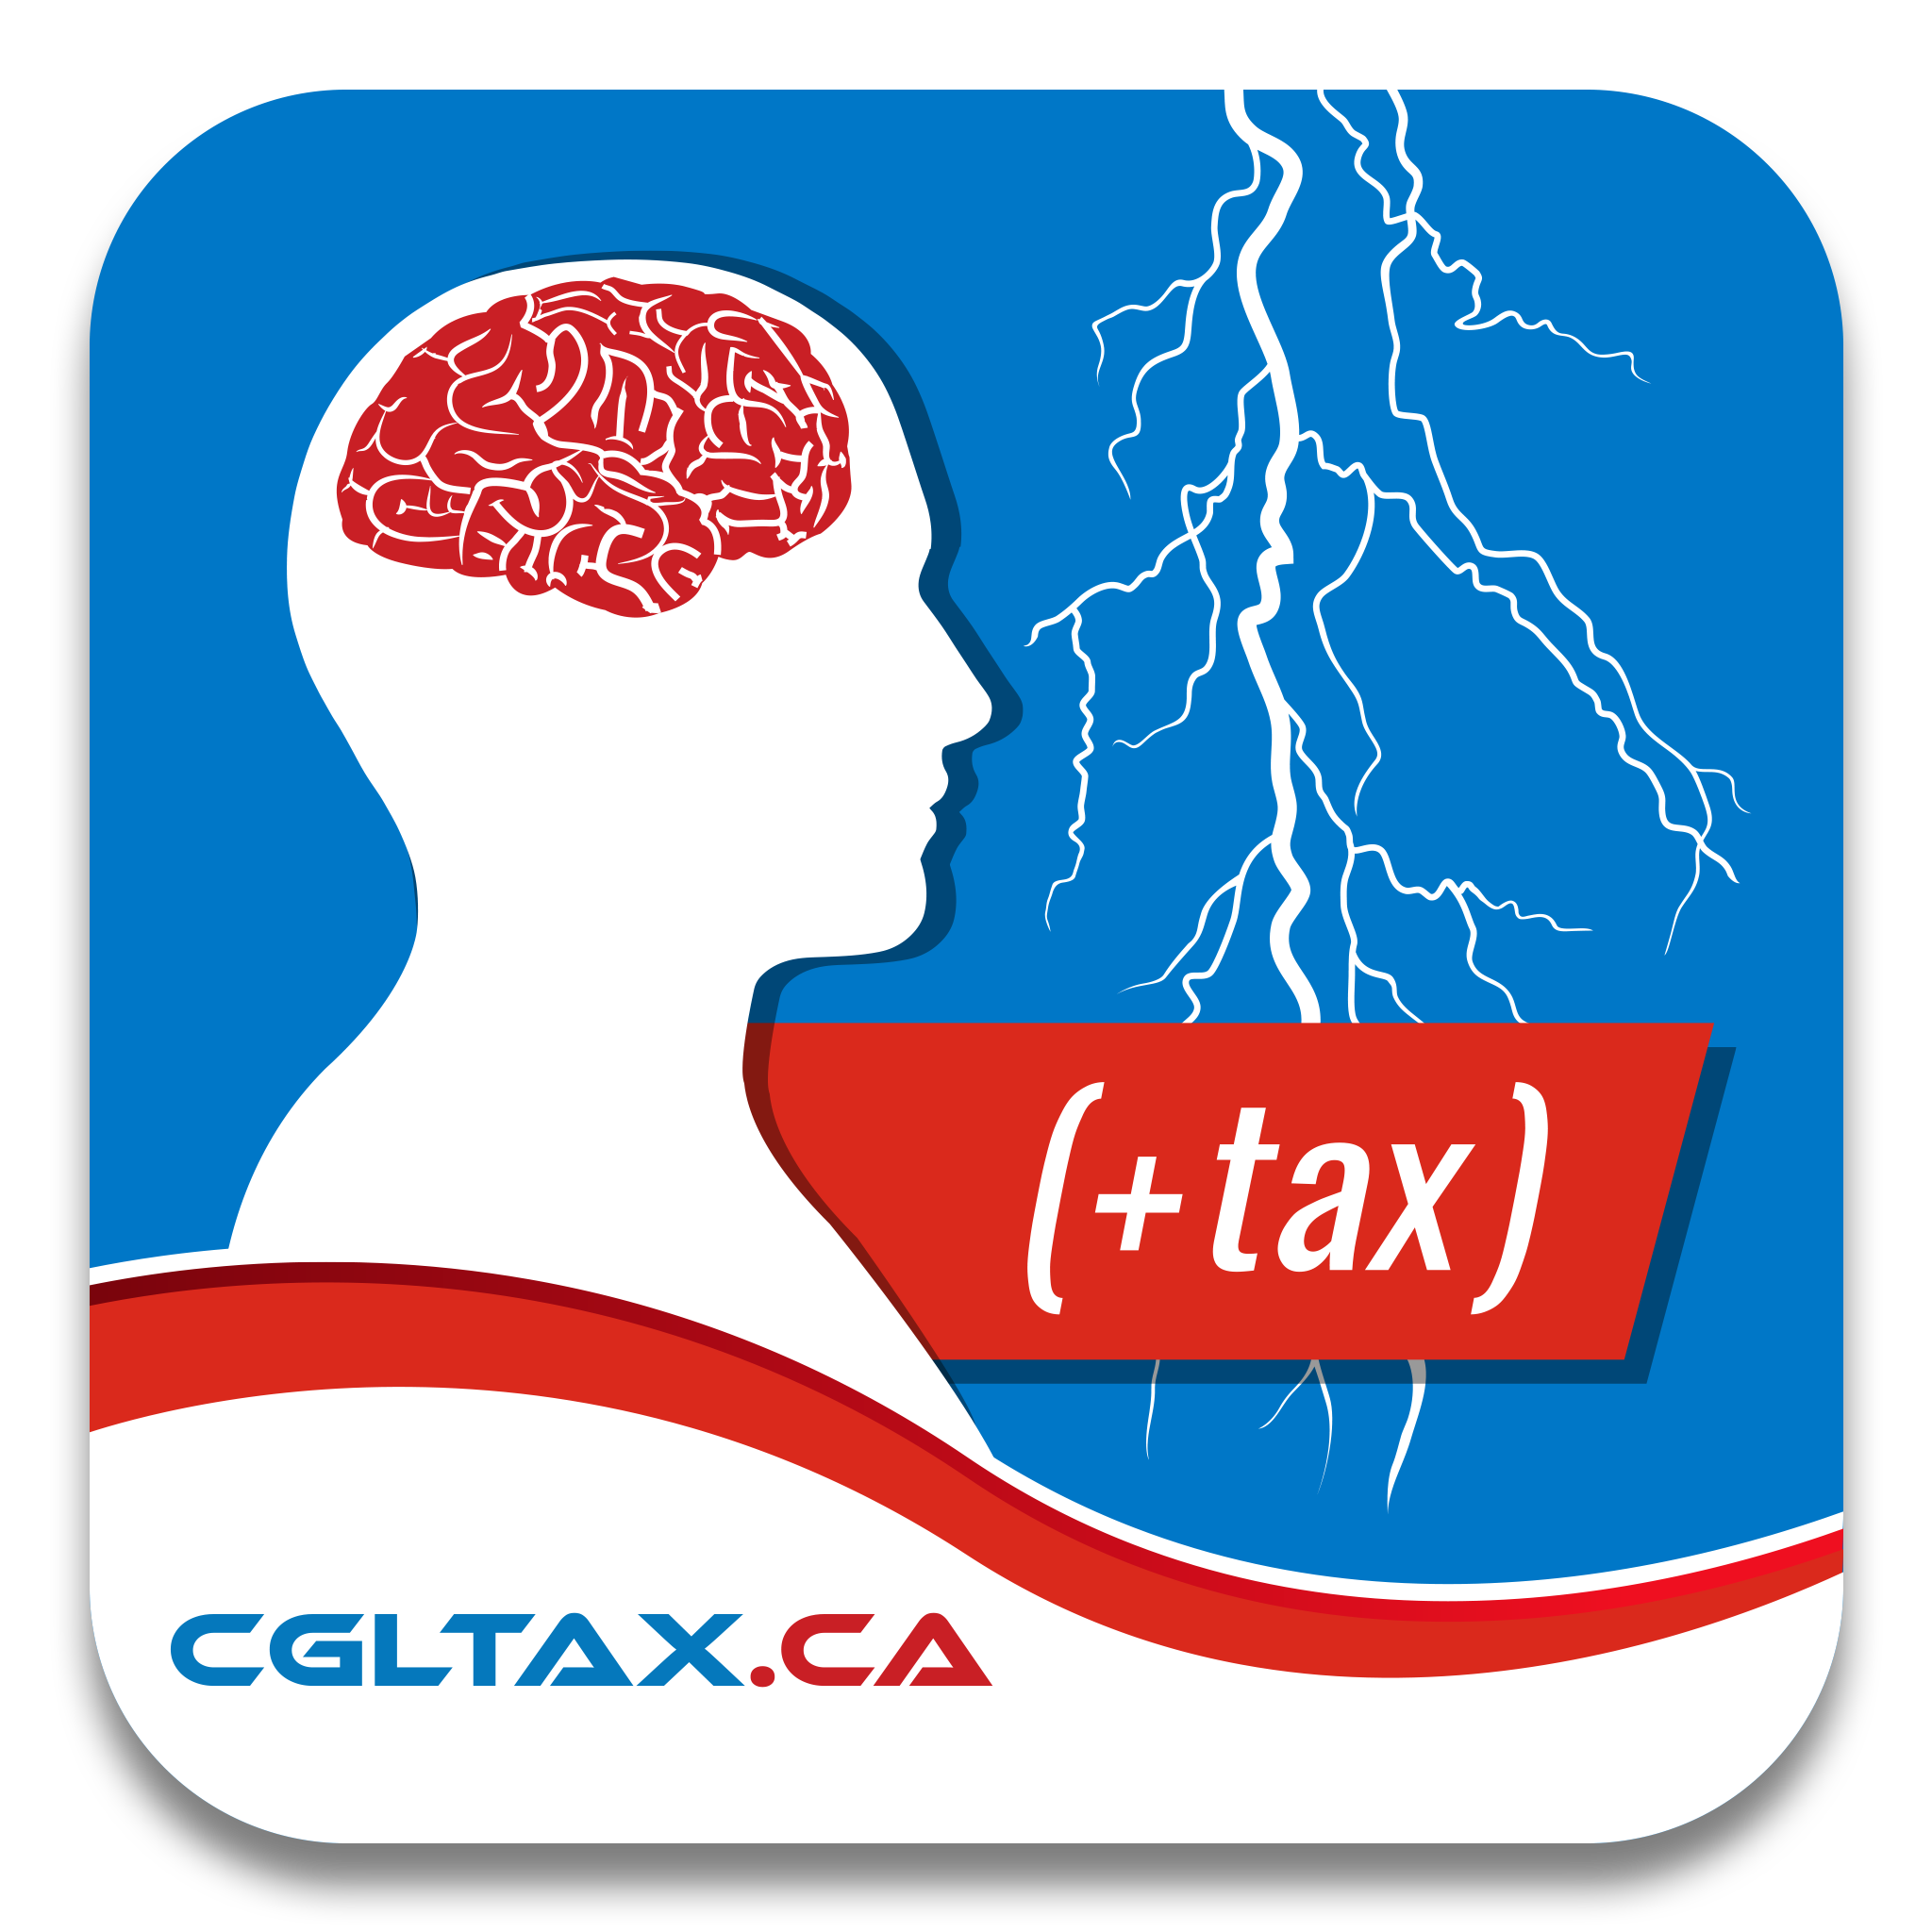 CGLtax.ca - Voted Best of Red Deer 6 Years in a Row!